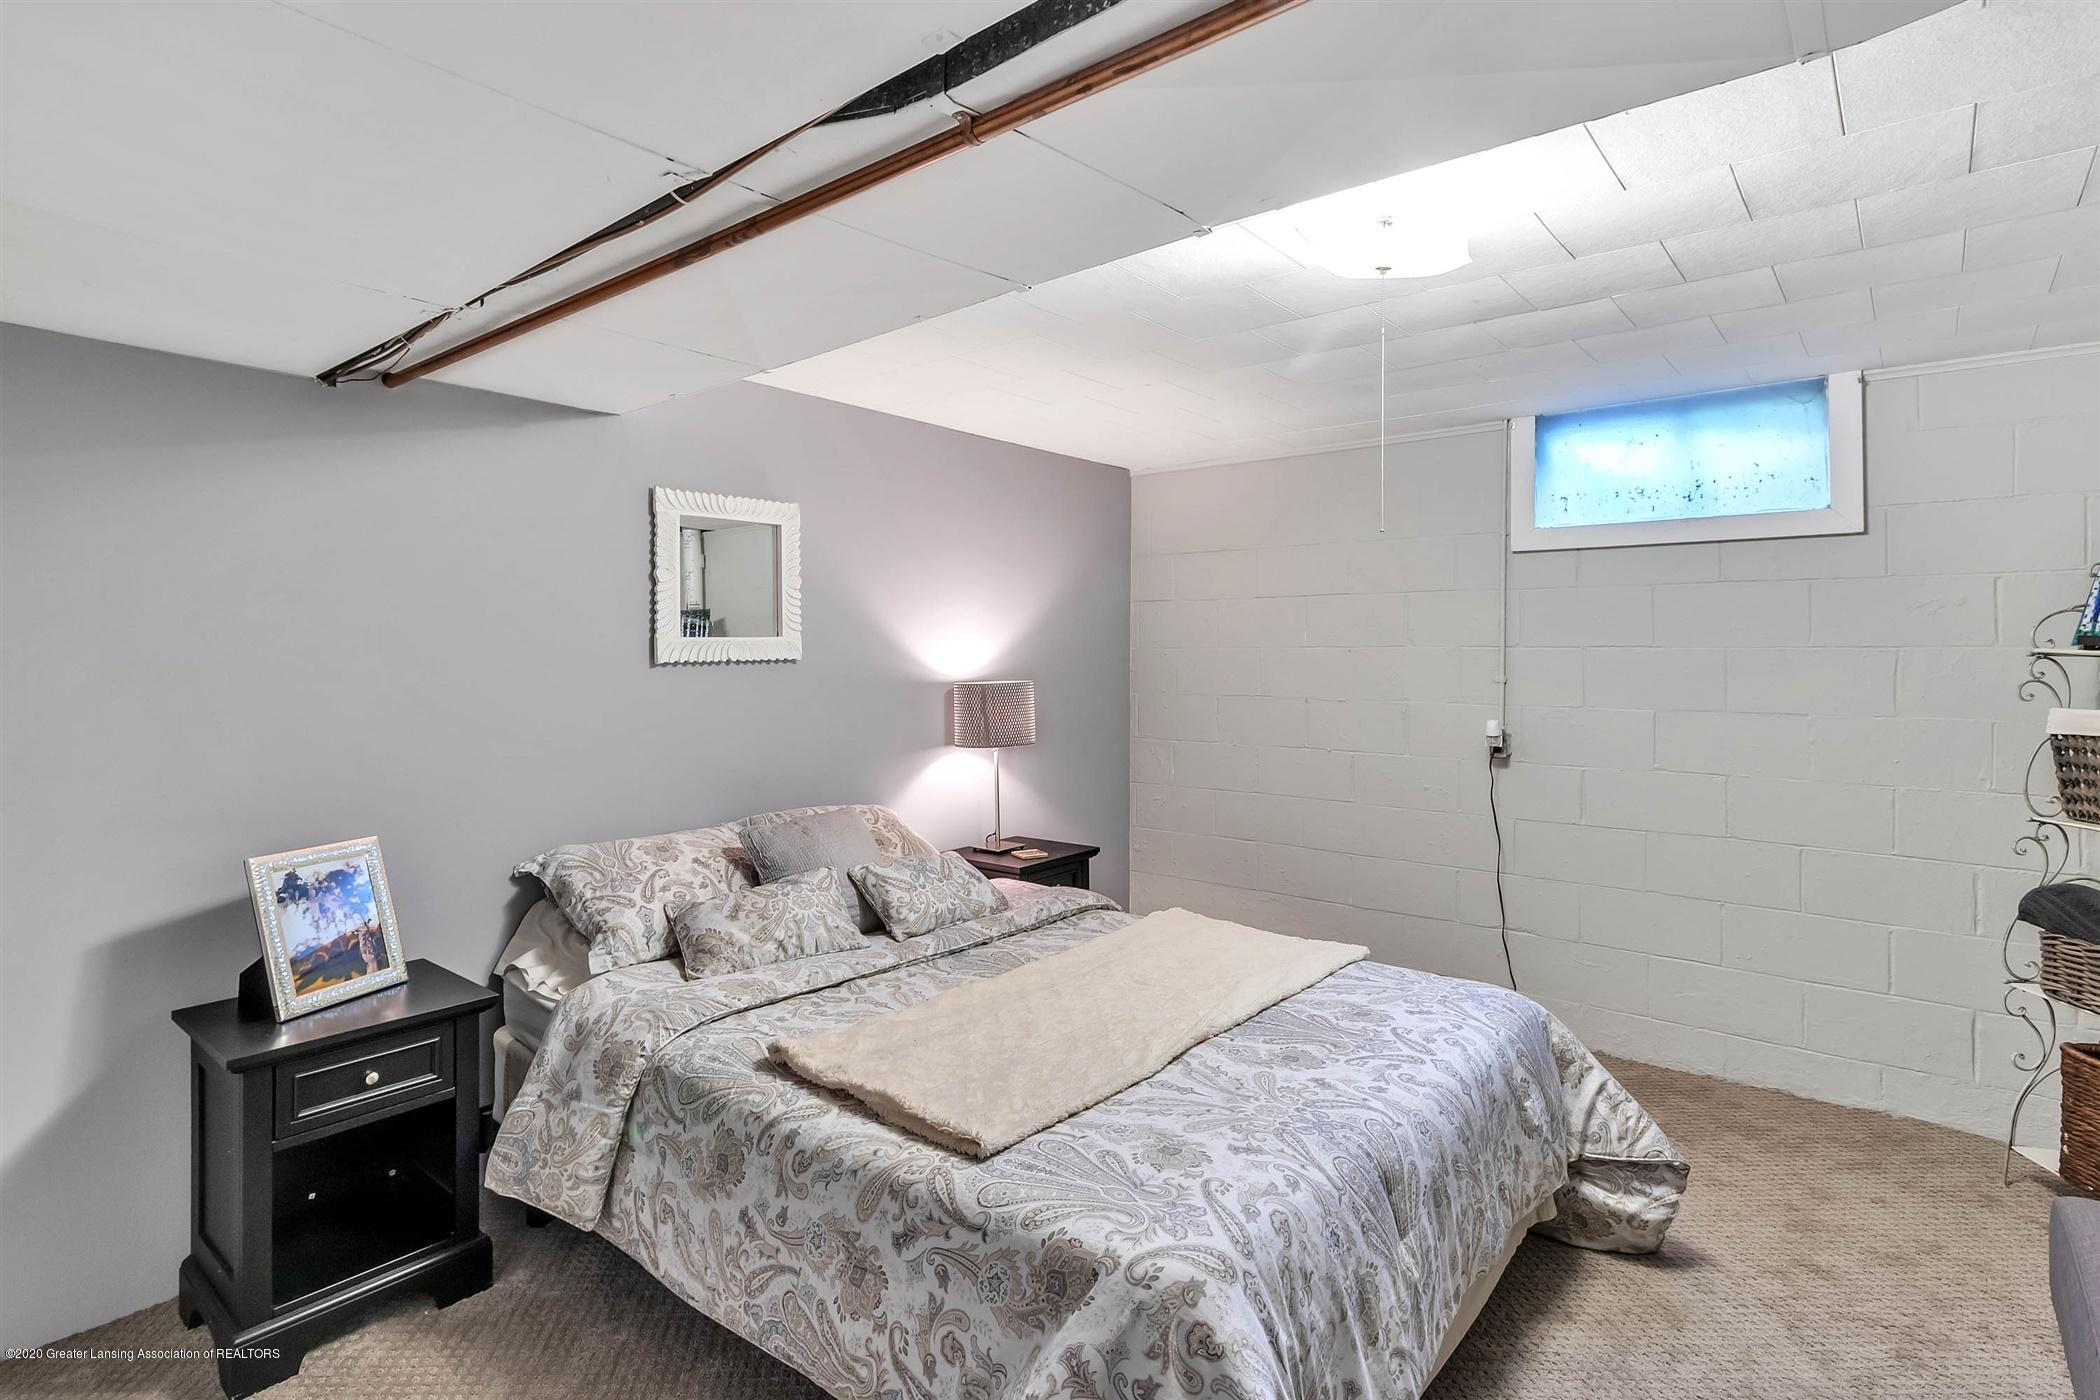 509 Walbridge Dr - LOWER LEVEL Bedroom - 34